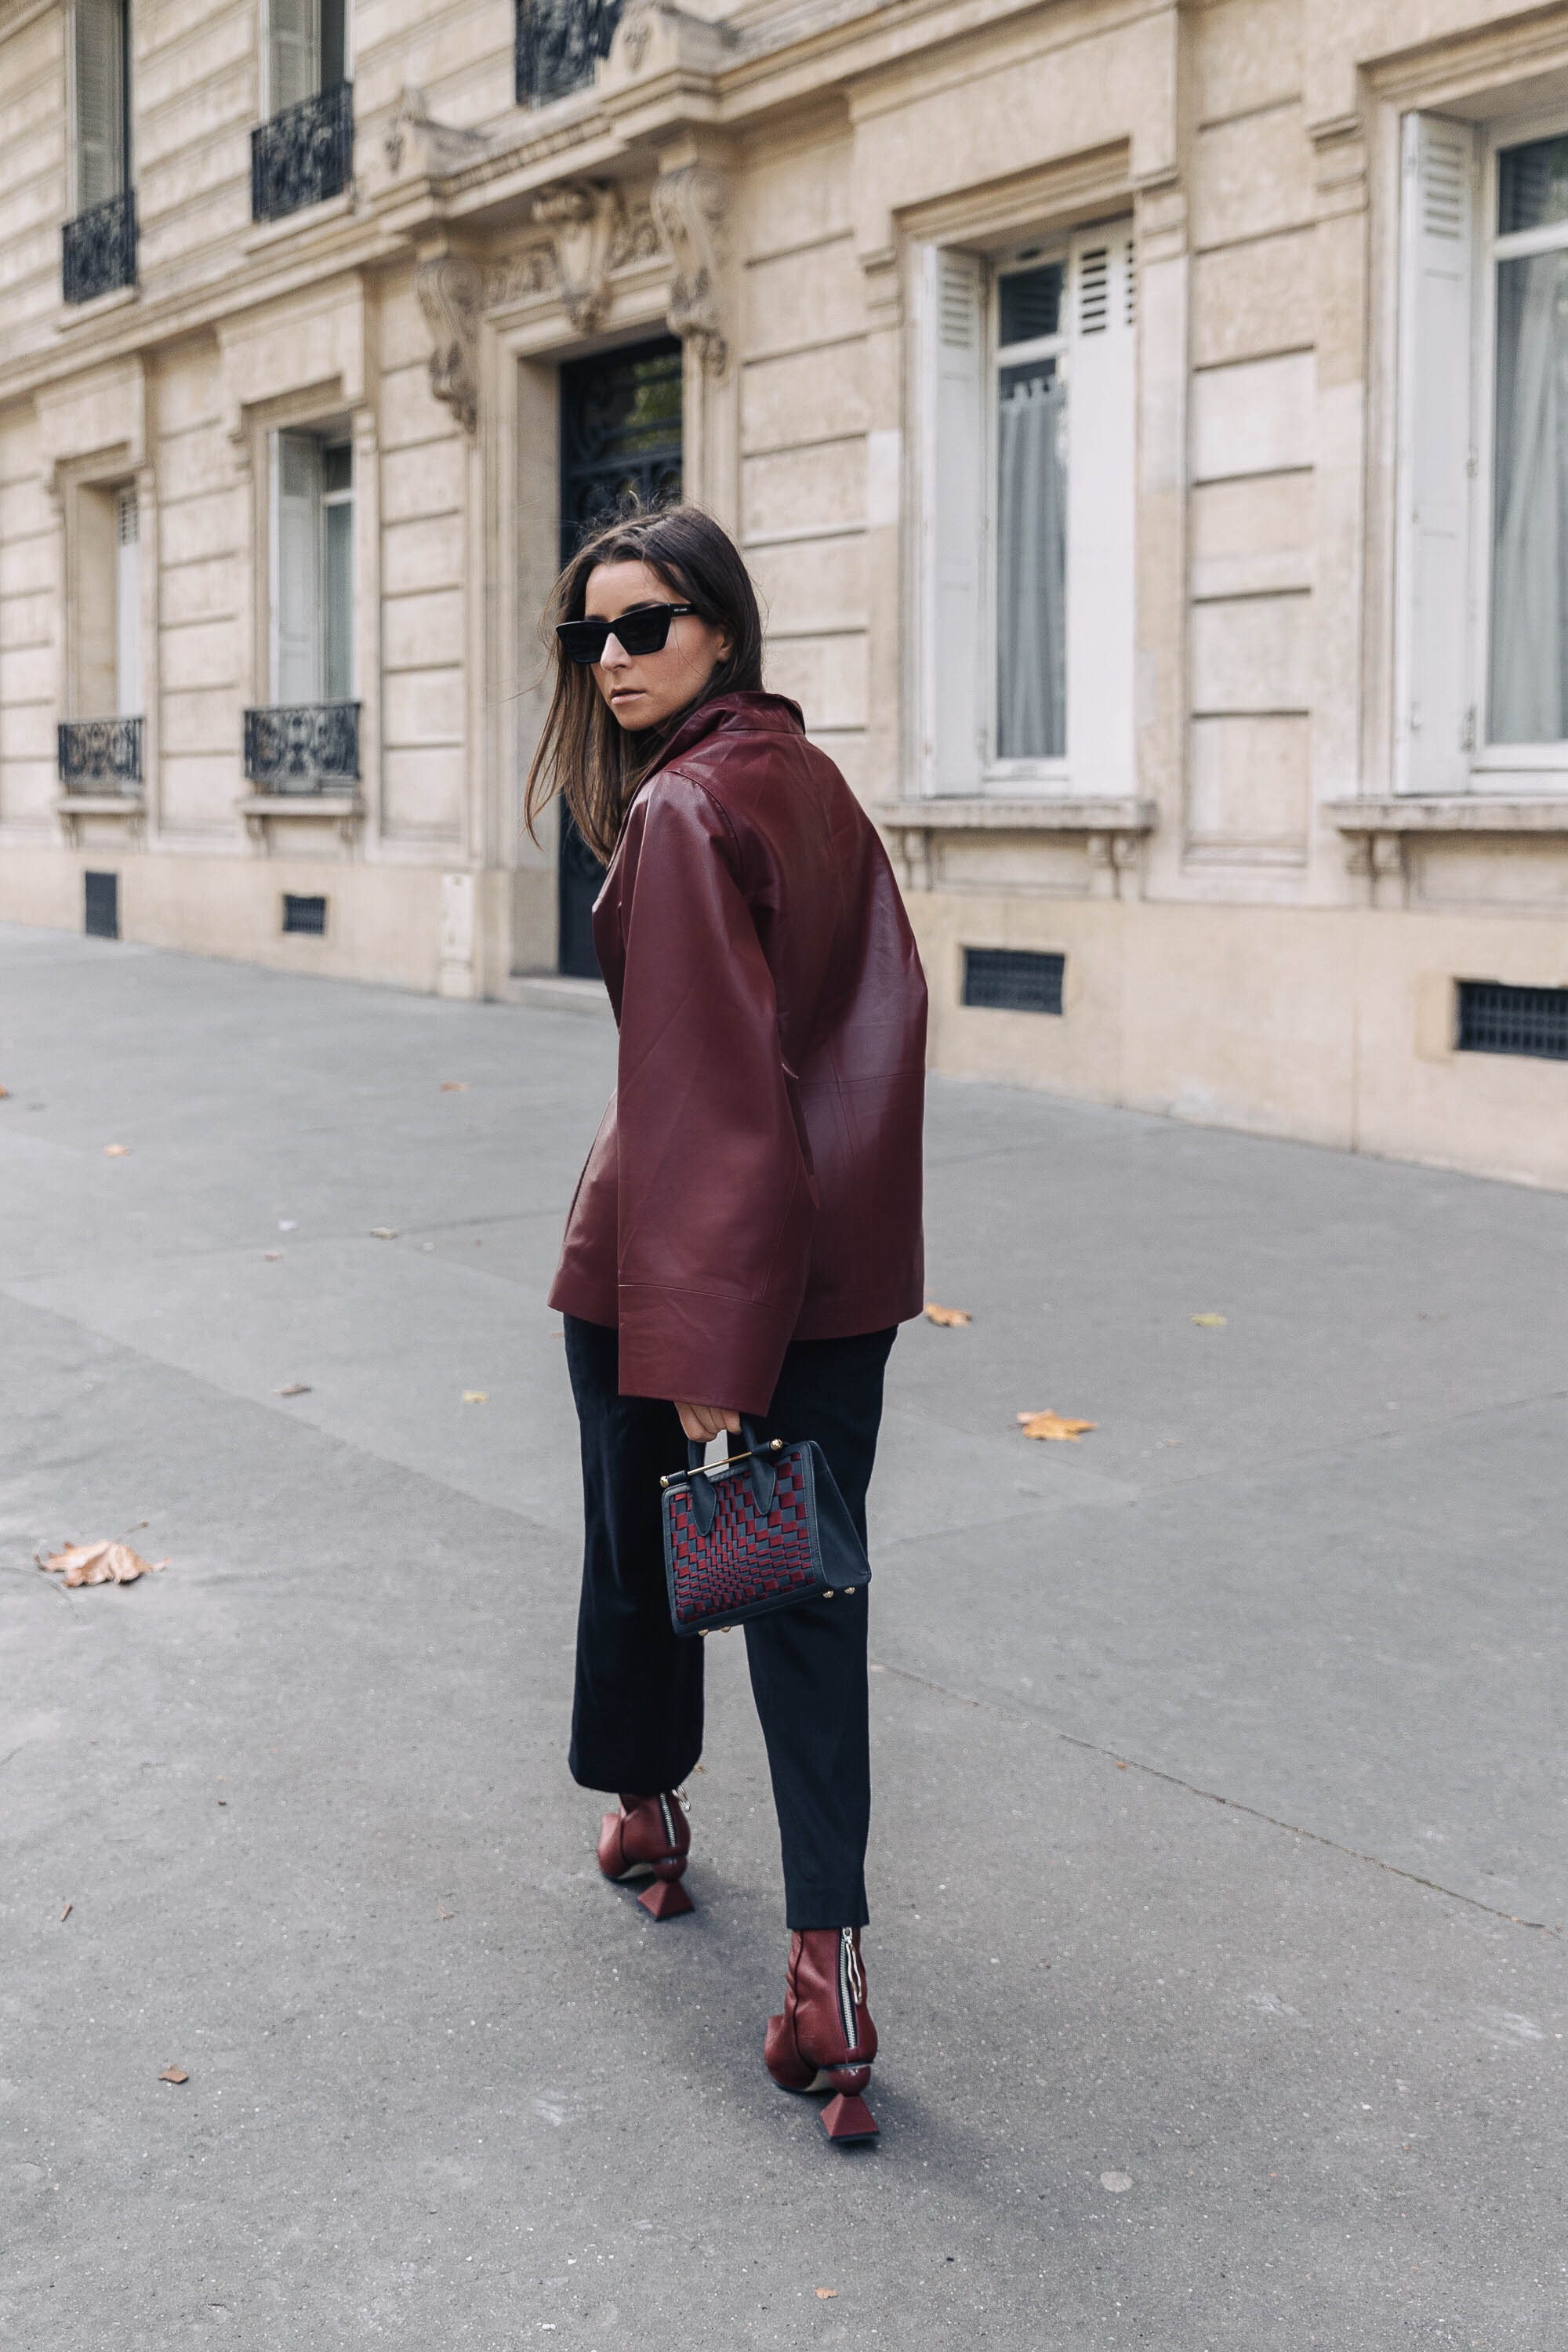 PFW SS20 Street Style Fall 2019 Paris Fashion Week Julia Comil wearing bag strathberry, jacket Nour Hammour, shoes Yuul Yie